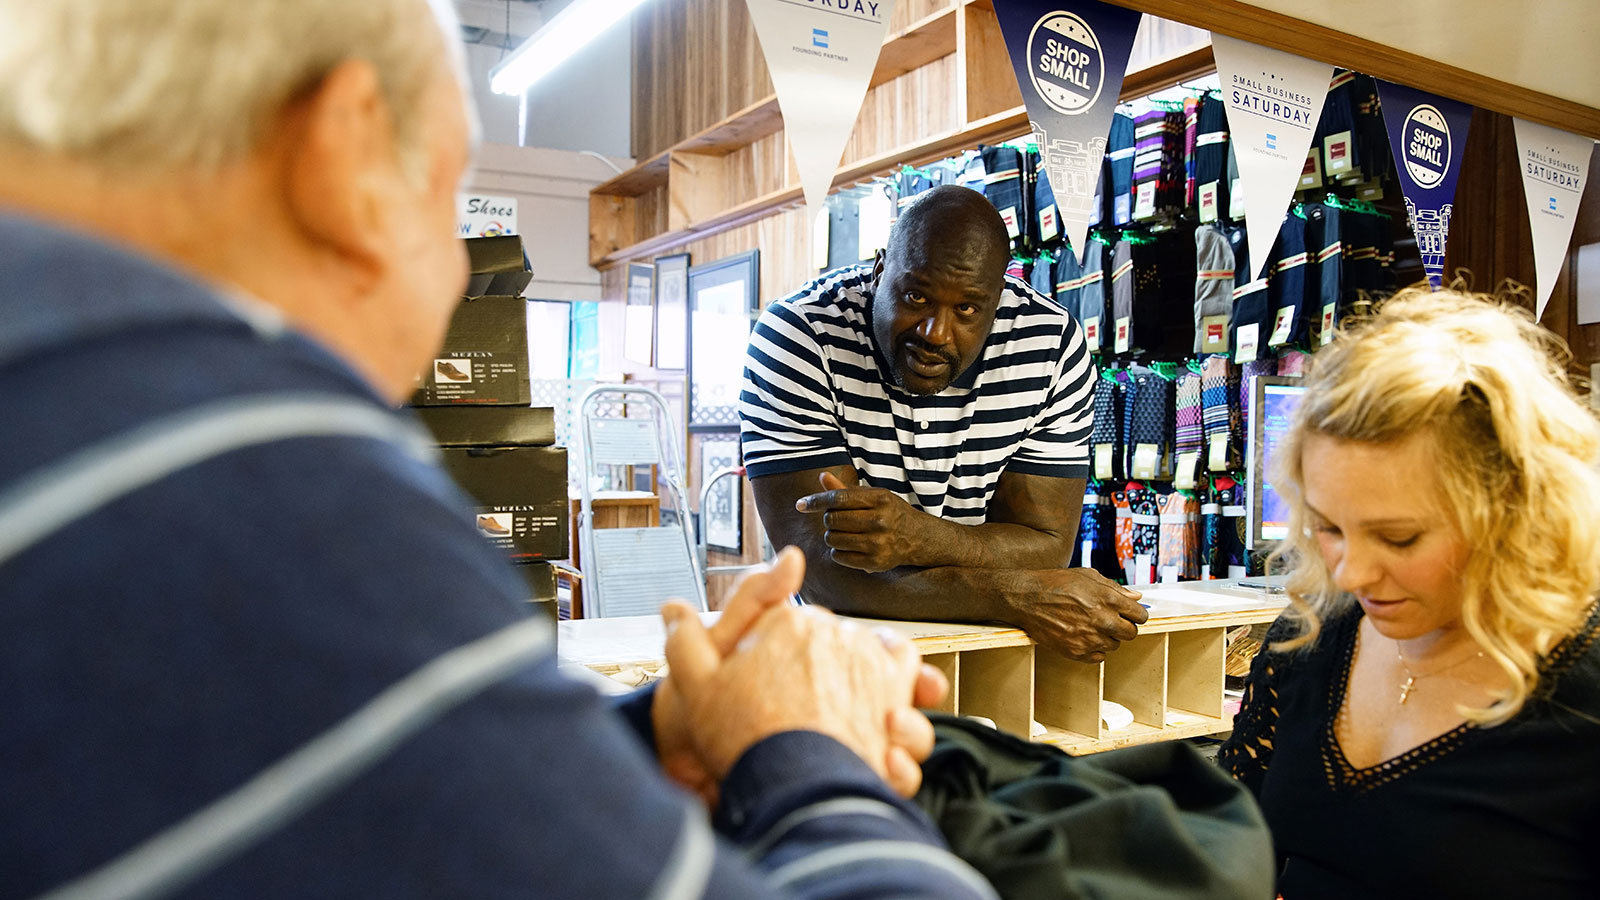 Is Small Business Saturday Good for Small Businesses?